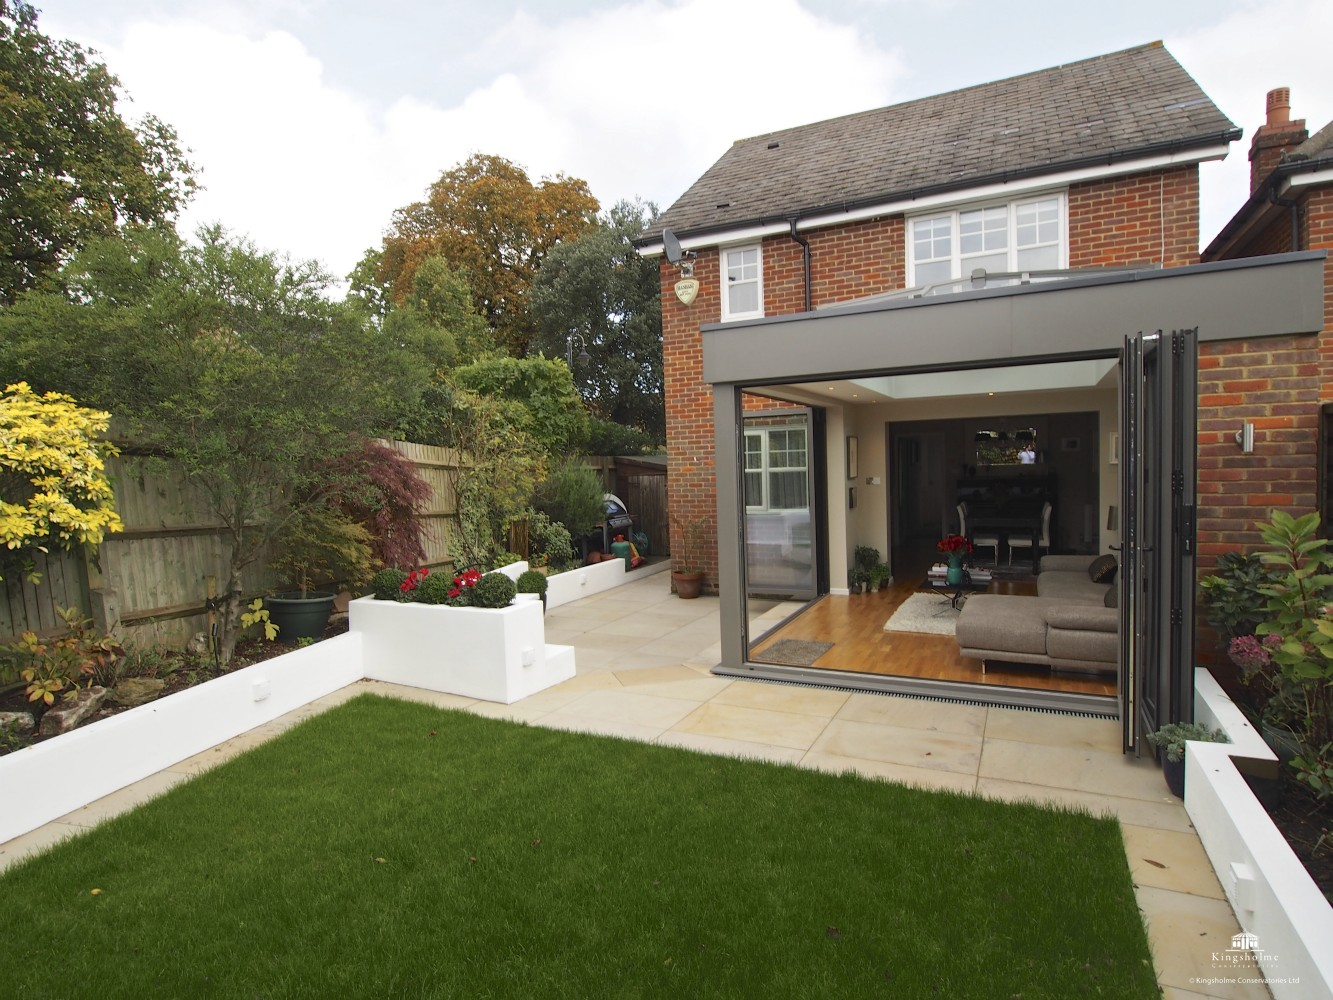 Single multiple storey house extensions more build leeds for Room extension plans